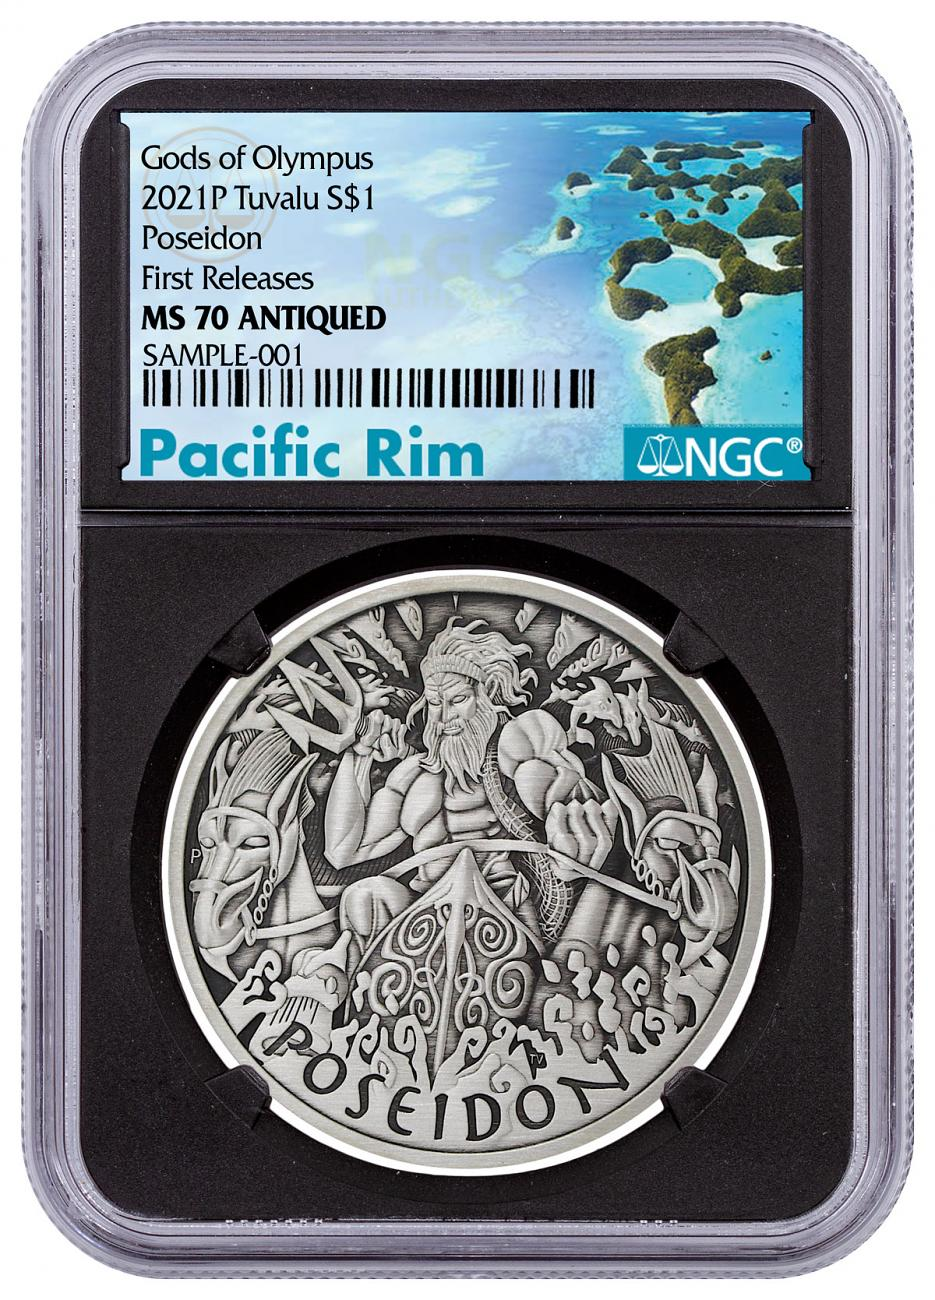 2021 Tuvalu Gods of Olympus - Poseidon 1 oz Silver Antiqued $1 Coin NGC MS70 FR Black Core Holder Pacific Rim Label